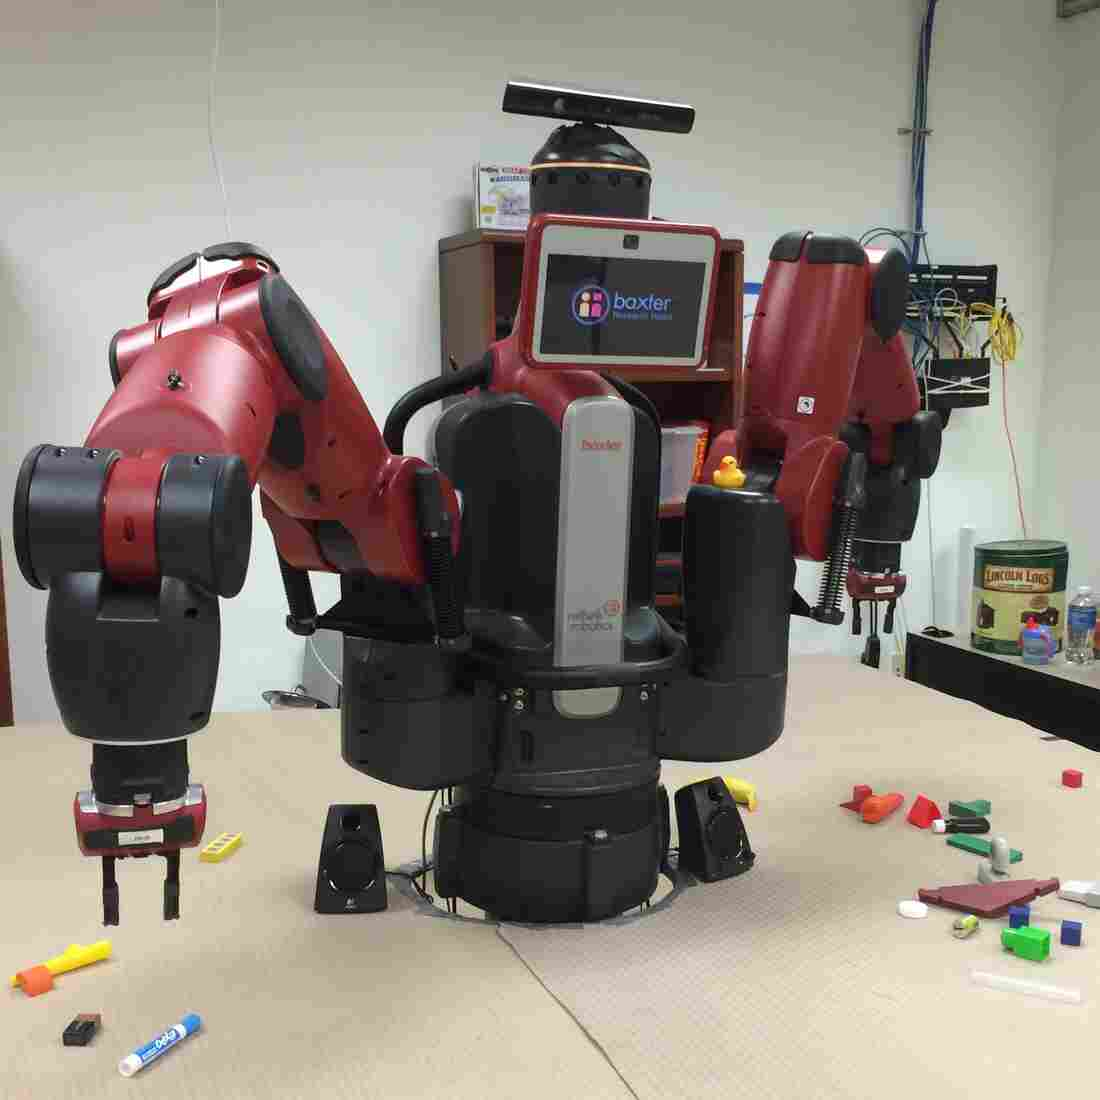 Researchers at Brown University's computer science department are studying whether a robot called Baxter can be taught to pick up different objects.